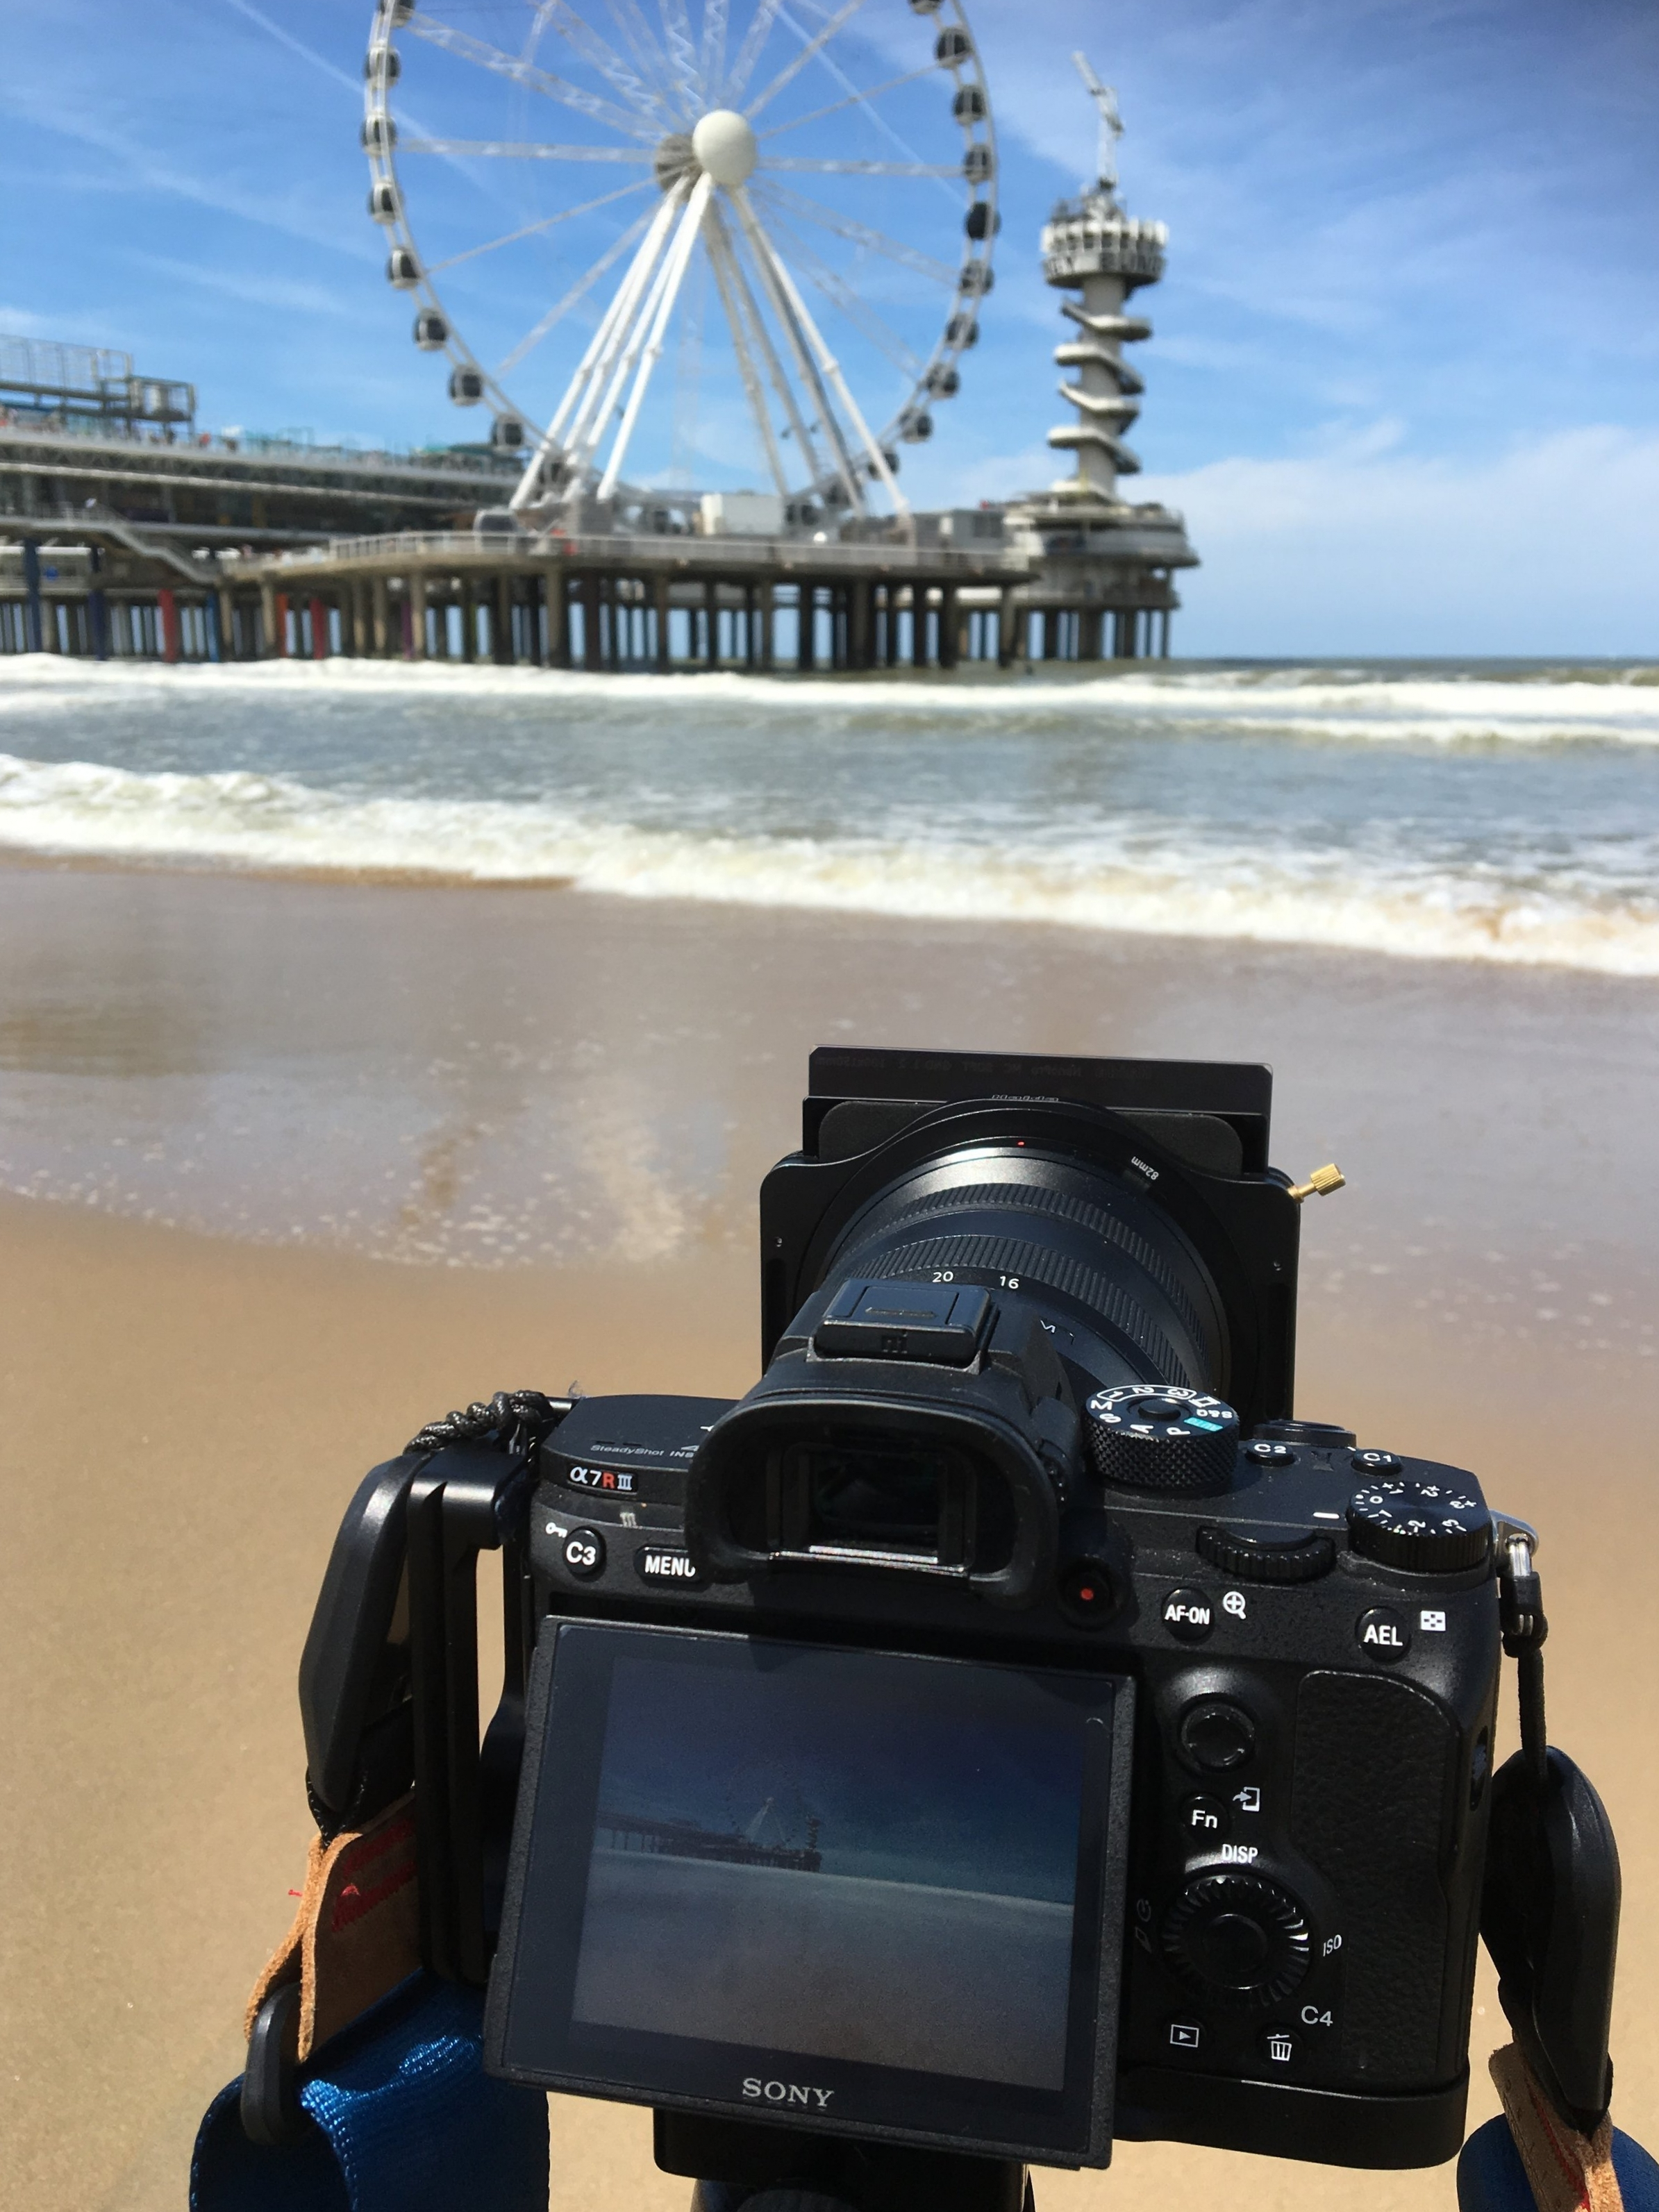 the Haida 100x100 filter system on my Sony a7riii at the beach of Scheveningen, Netherlands, as I was photographing long exposures